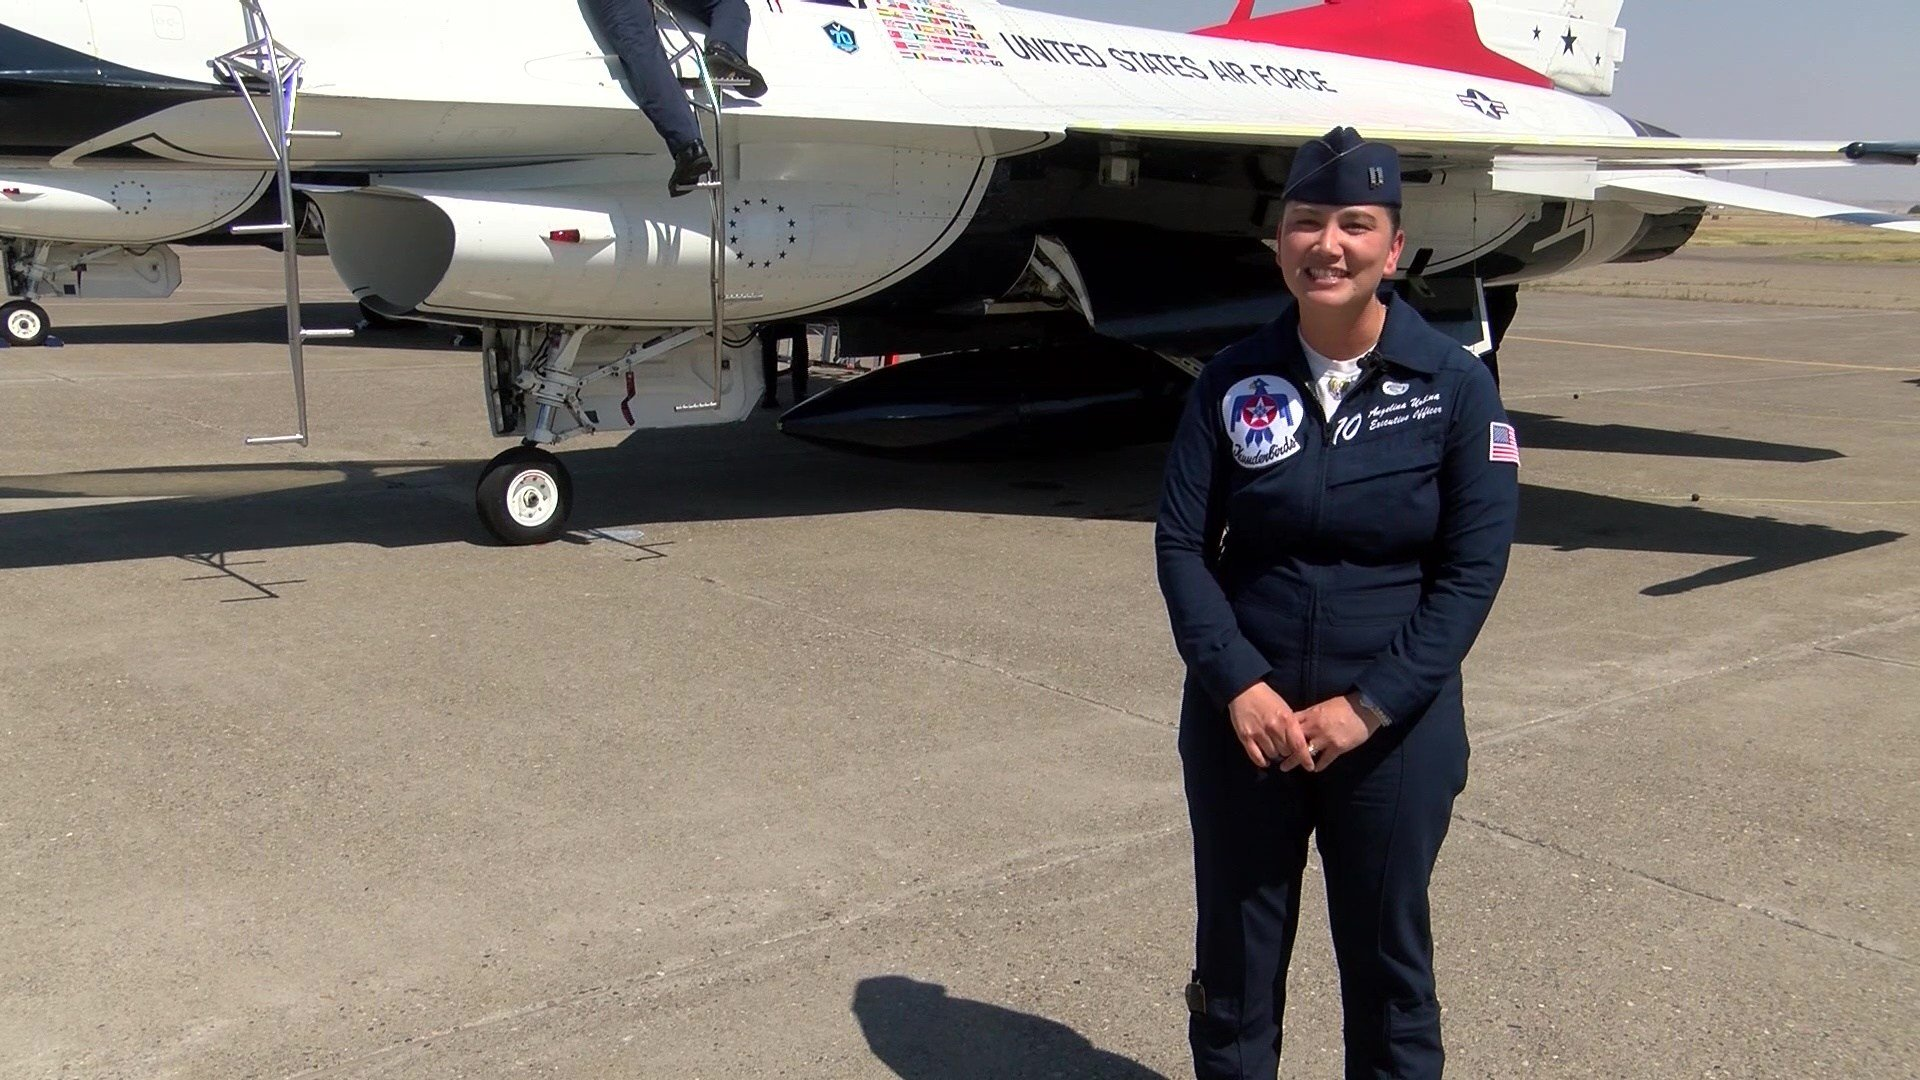 Captain Angelina Urbina currently serves as the Executive Officer for the USAF Thunderbirds